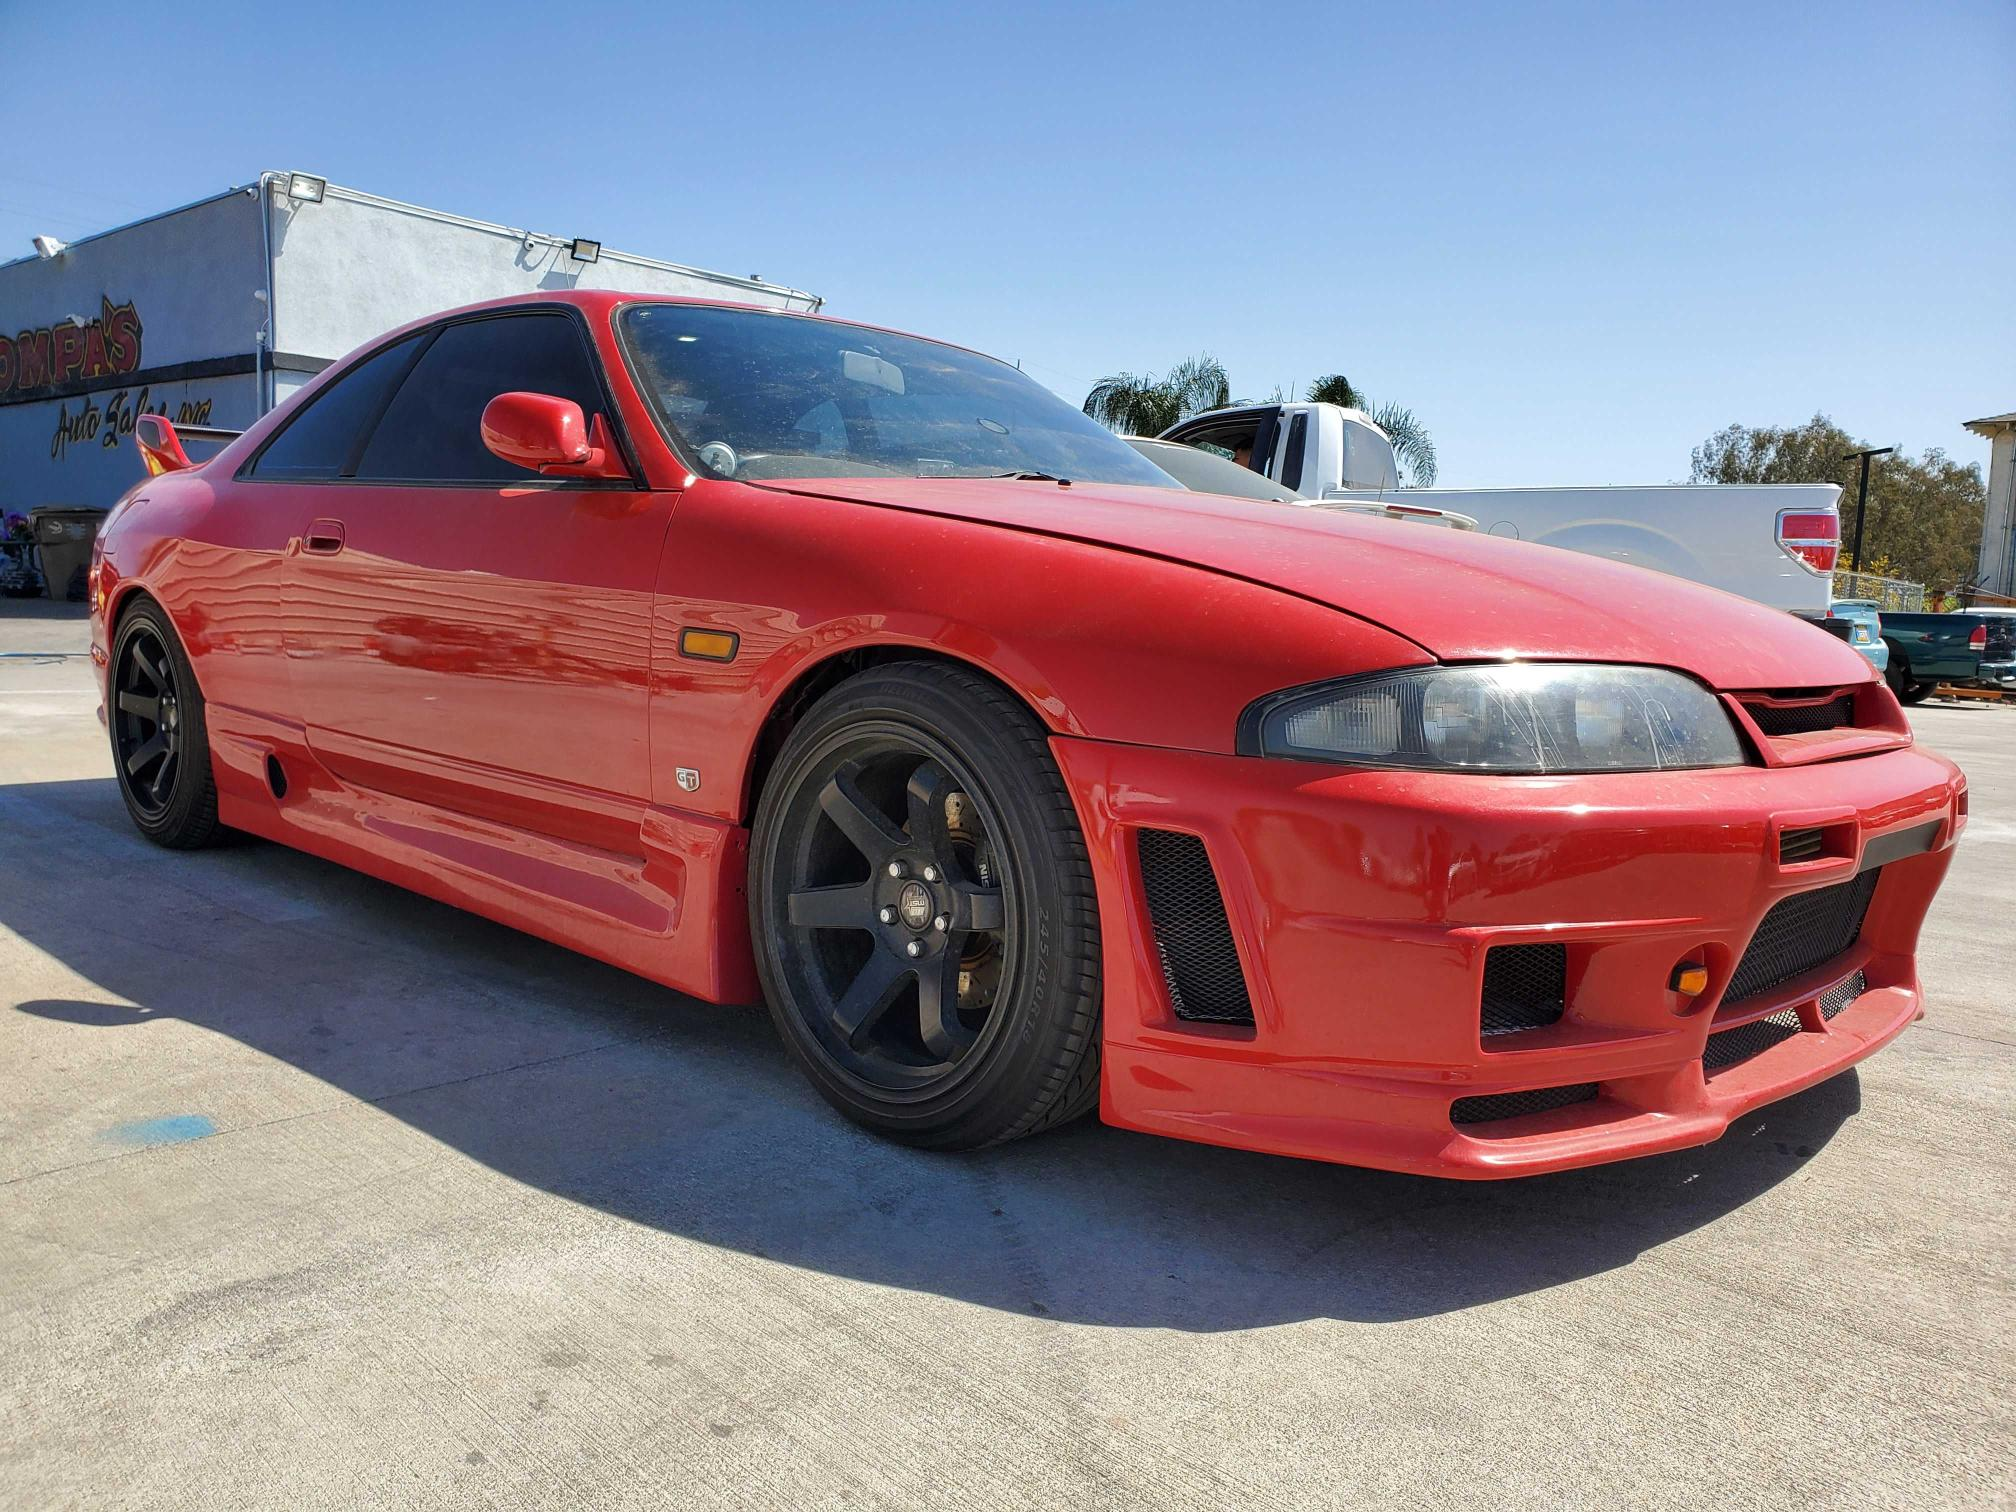 Nissan salvage cars for sale: 1993 Nissan Skyline GT